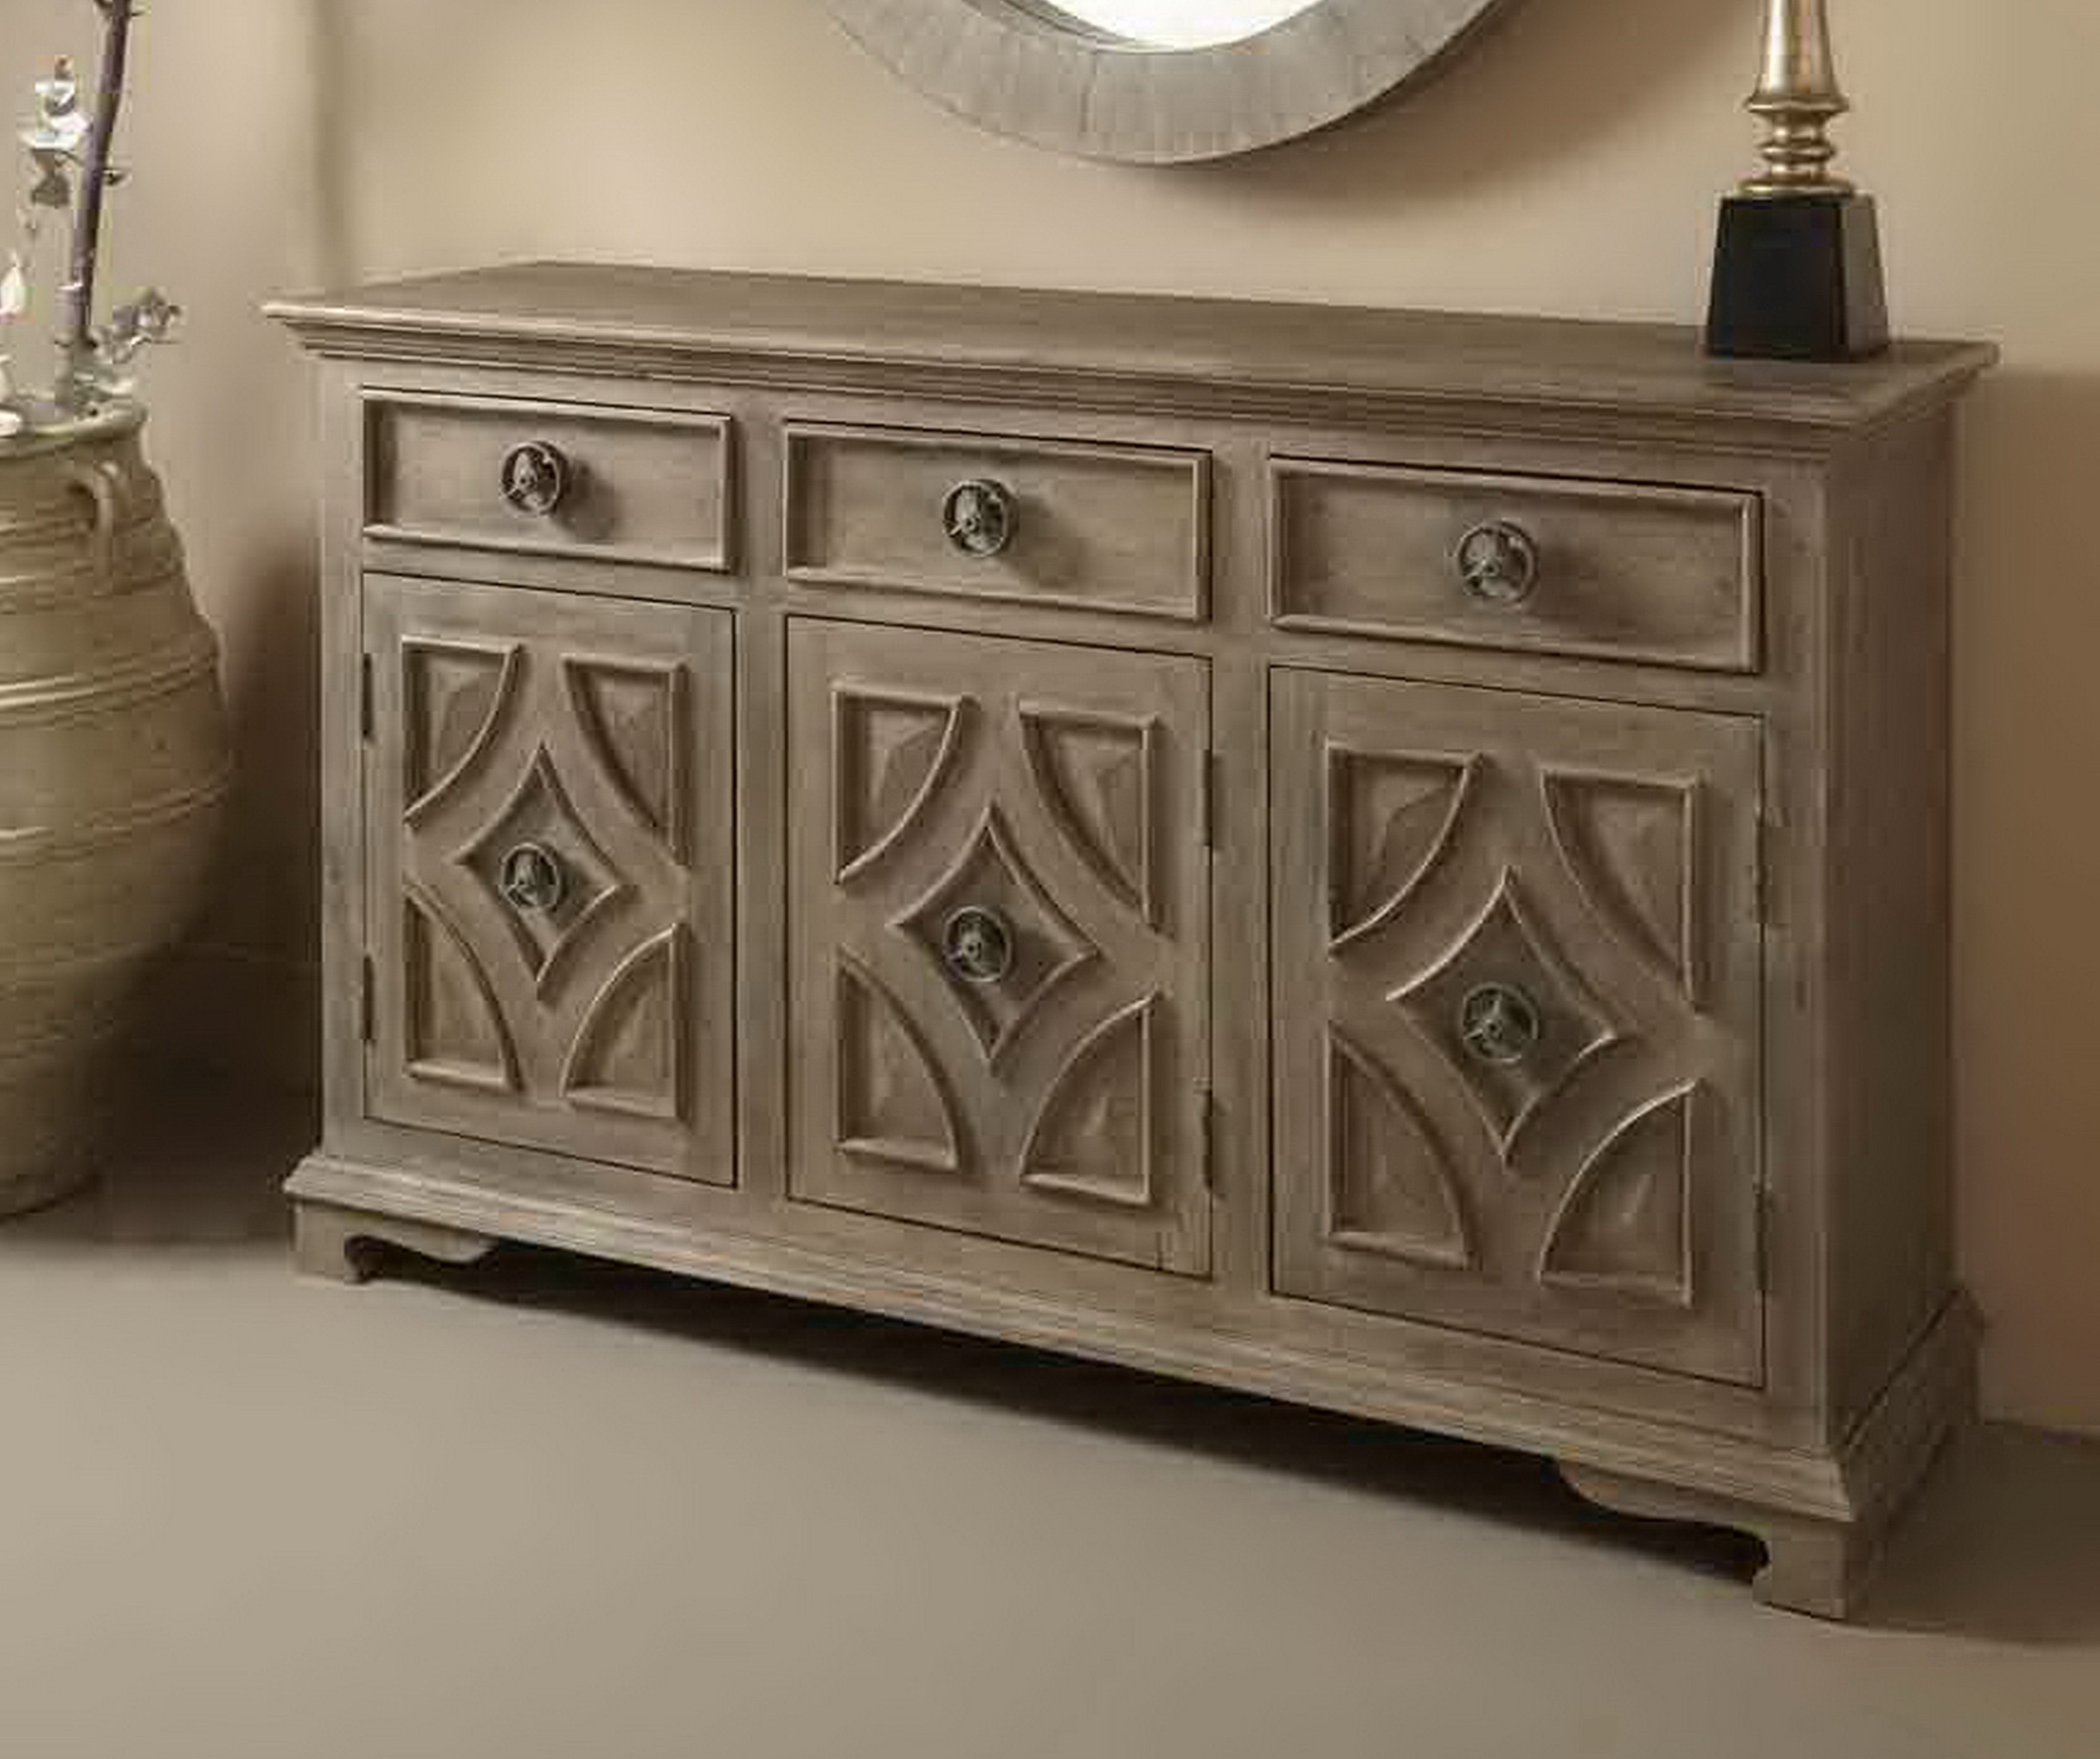 Gracie Oaks Hayter Sideboard & Reviews | Wayfair Within Best And Newest Joyner Sideboards (View 3 of 20)